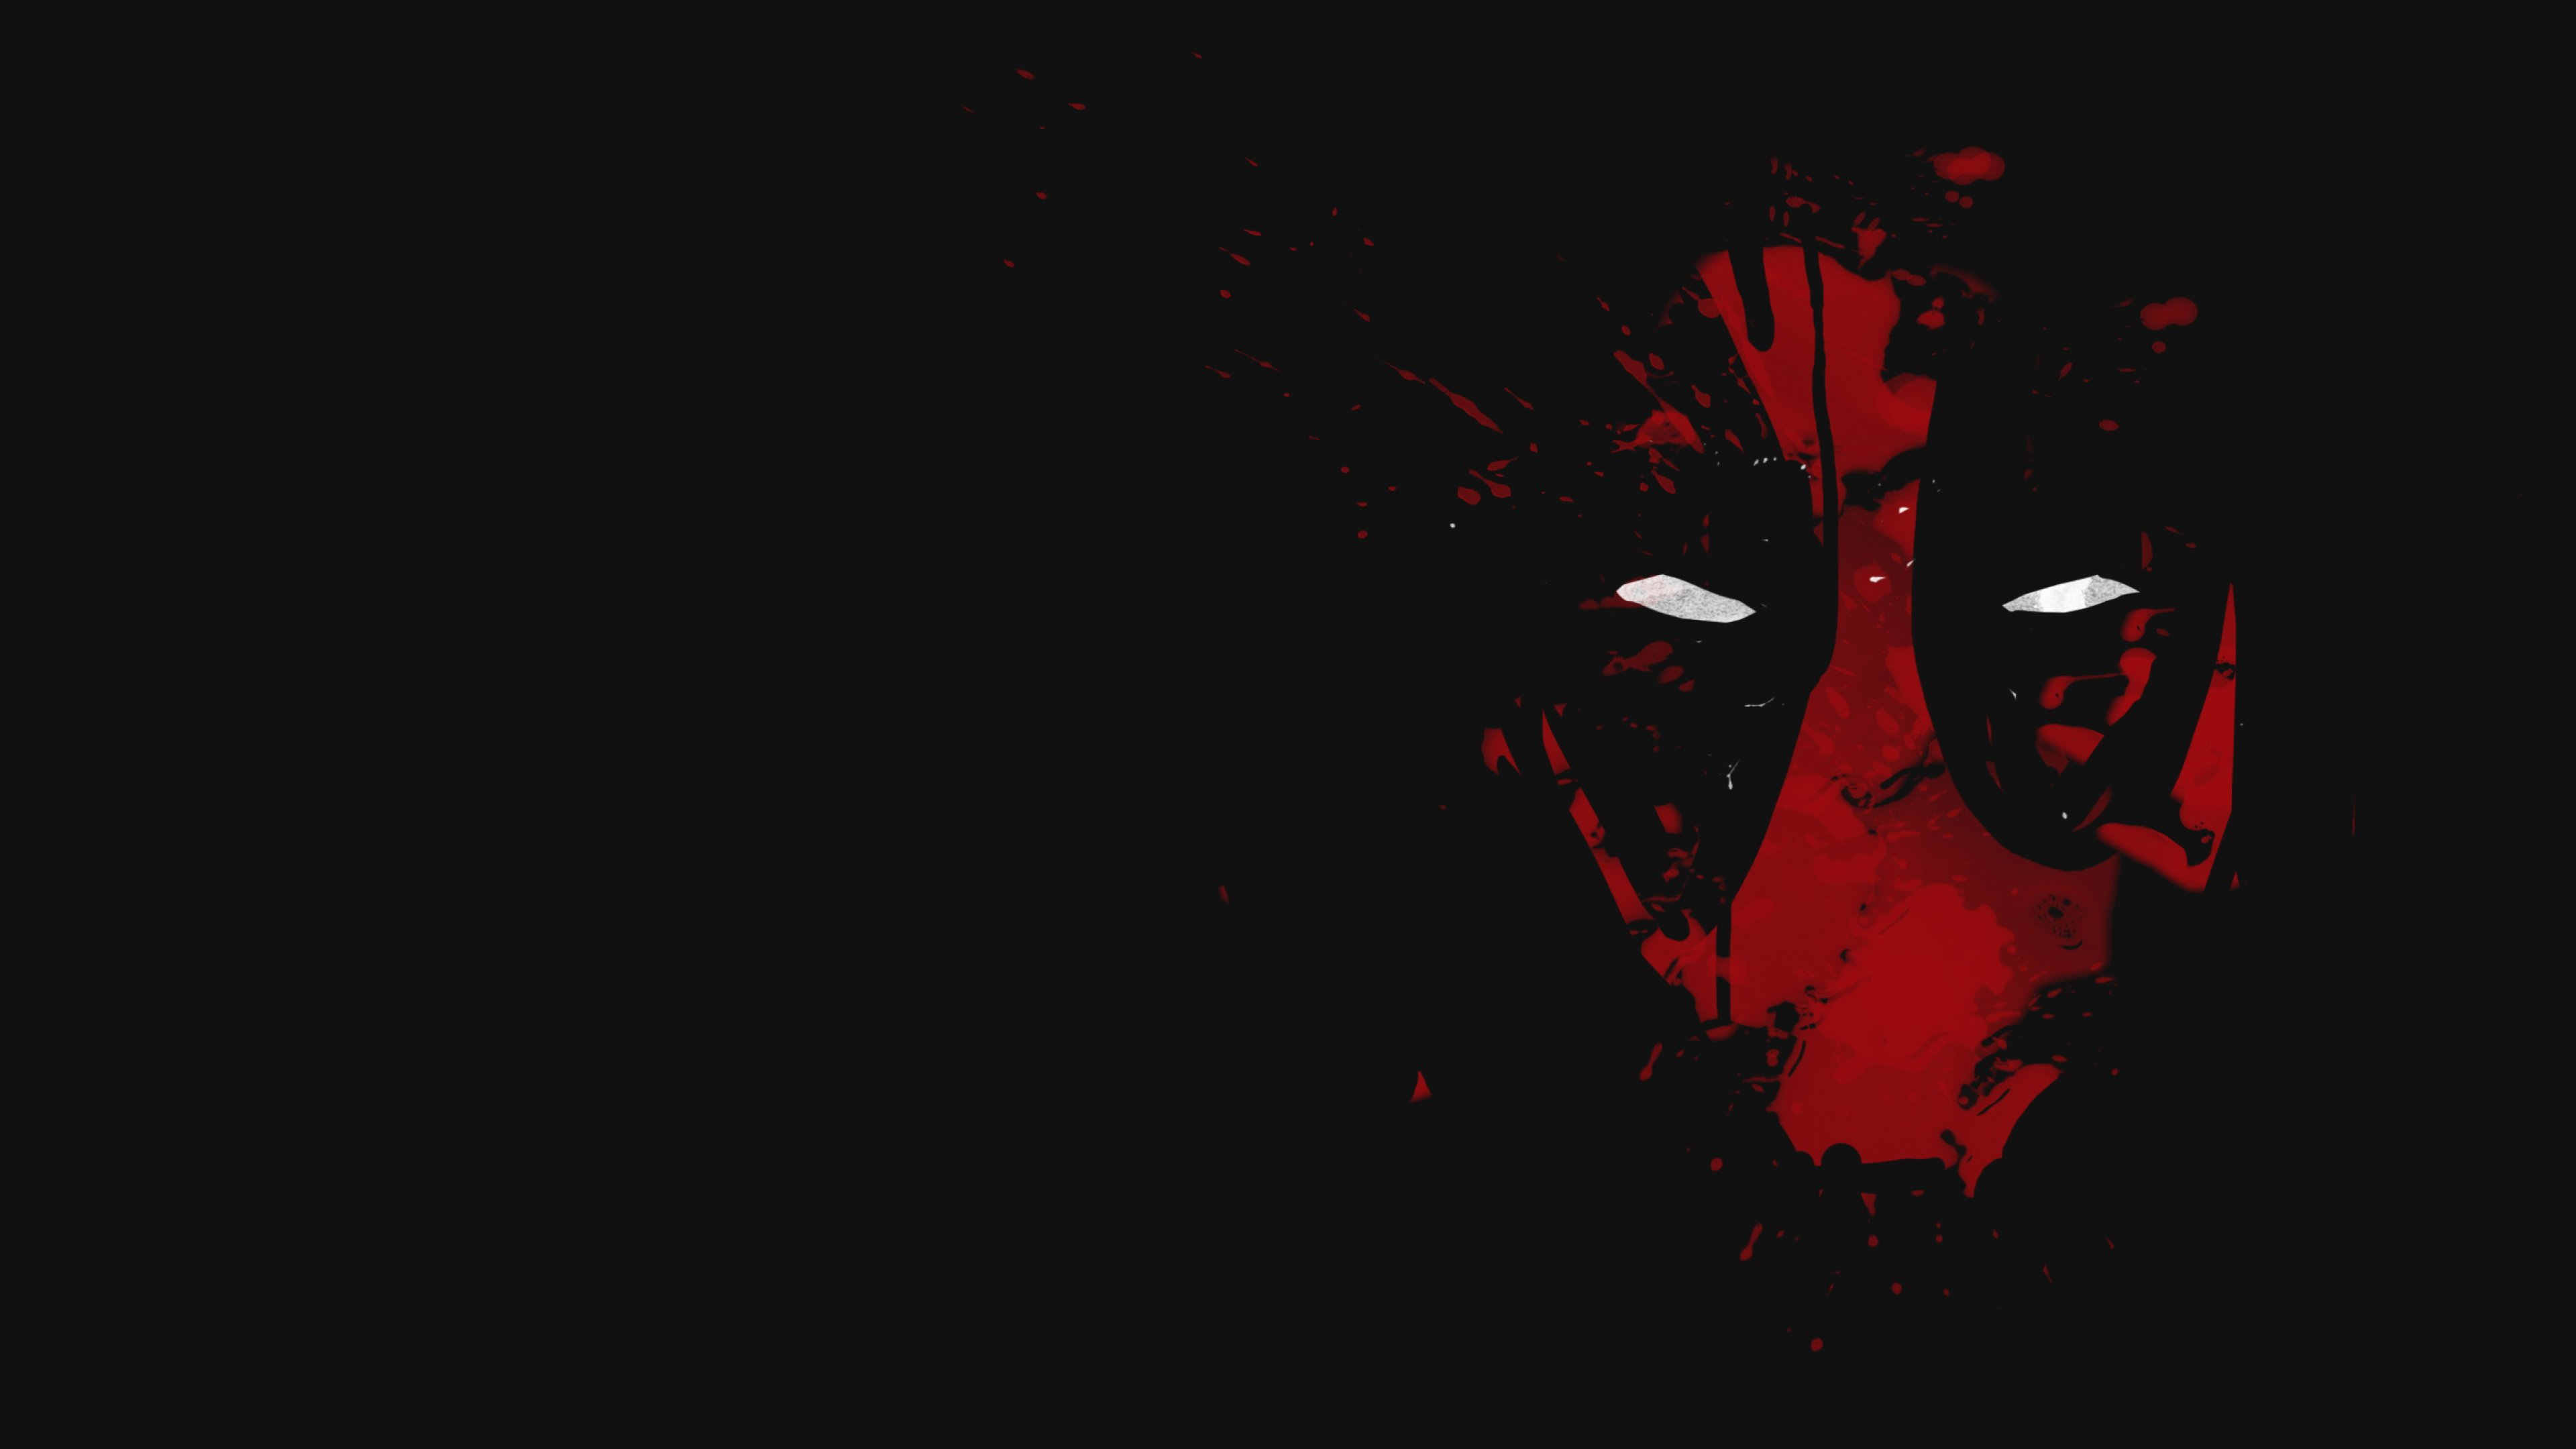 Deadpool Abstract 4k Hd Superheroes 4k Wallpapers Images Backgrounds Photos And Pictures